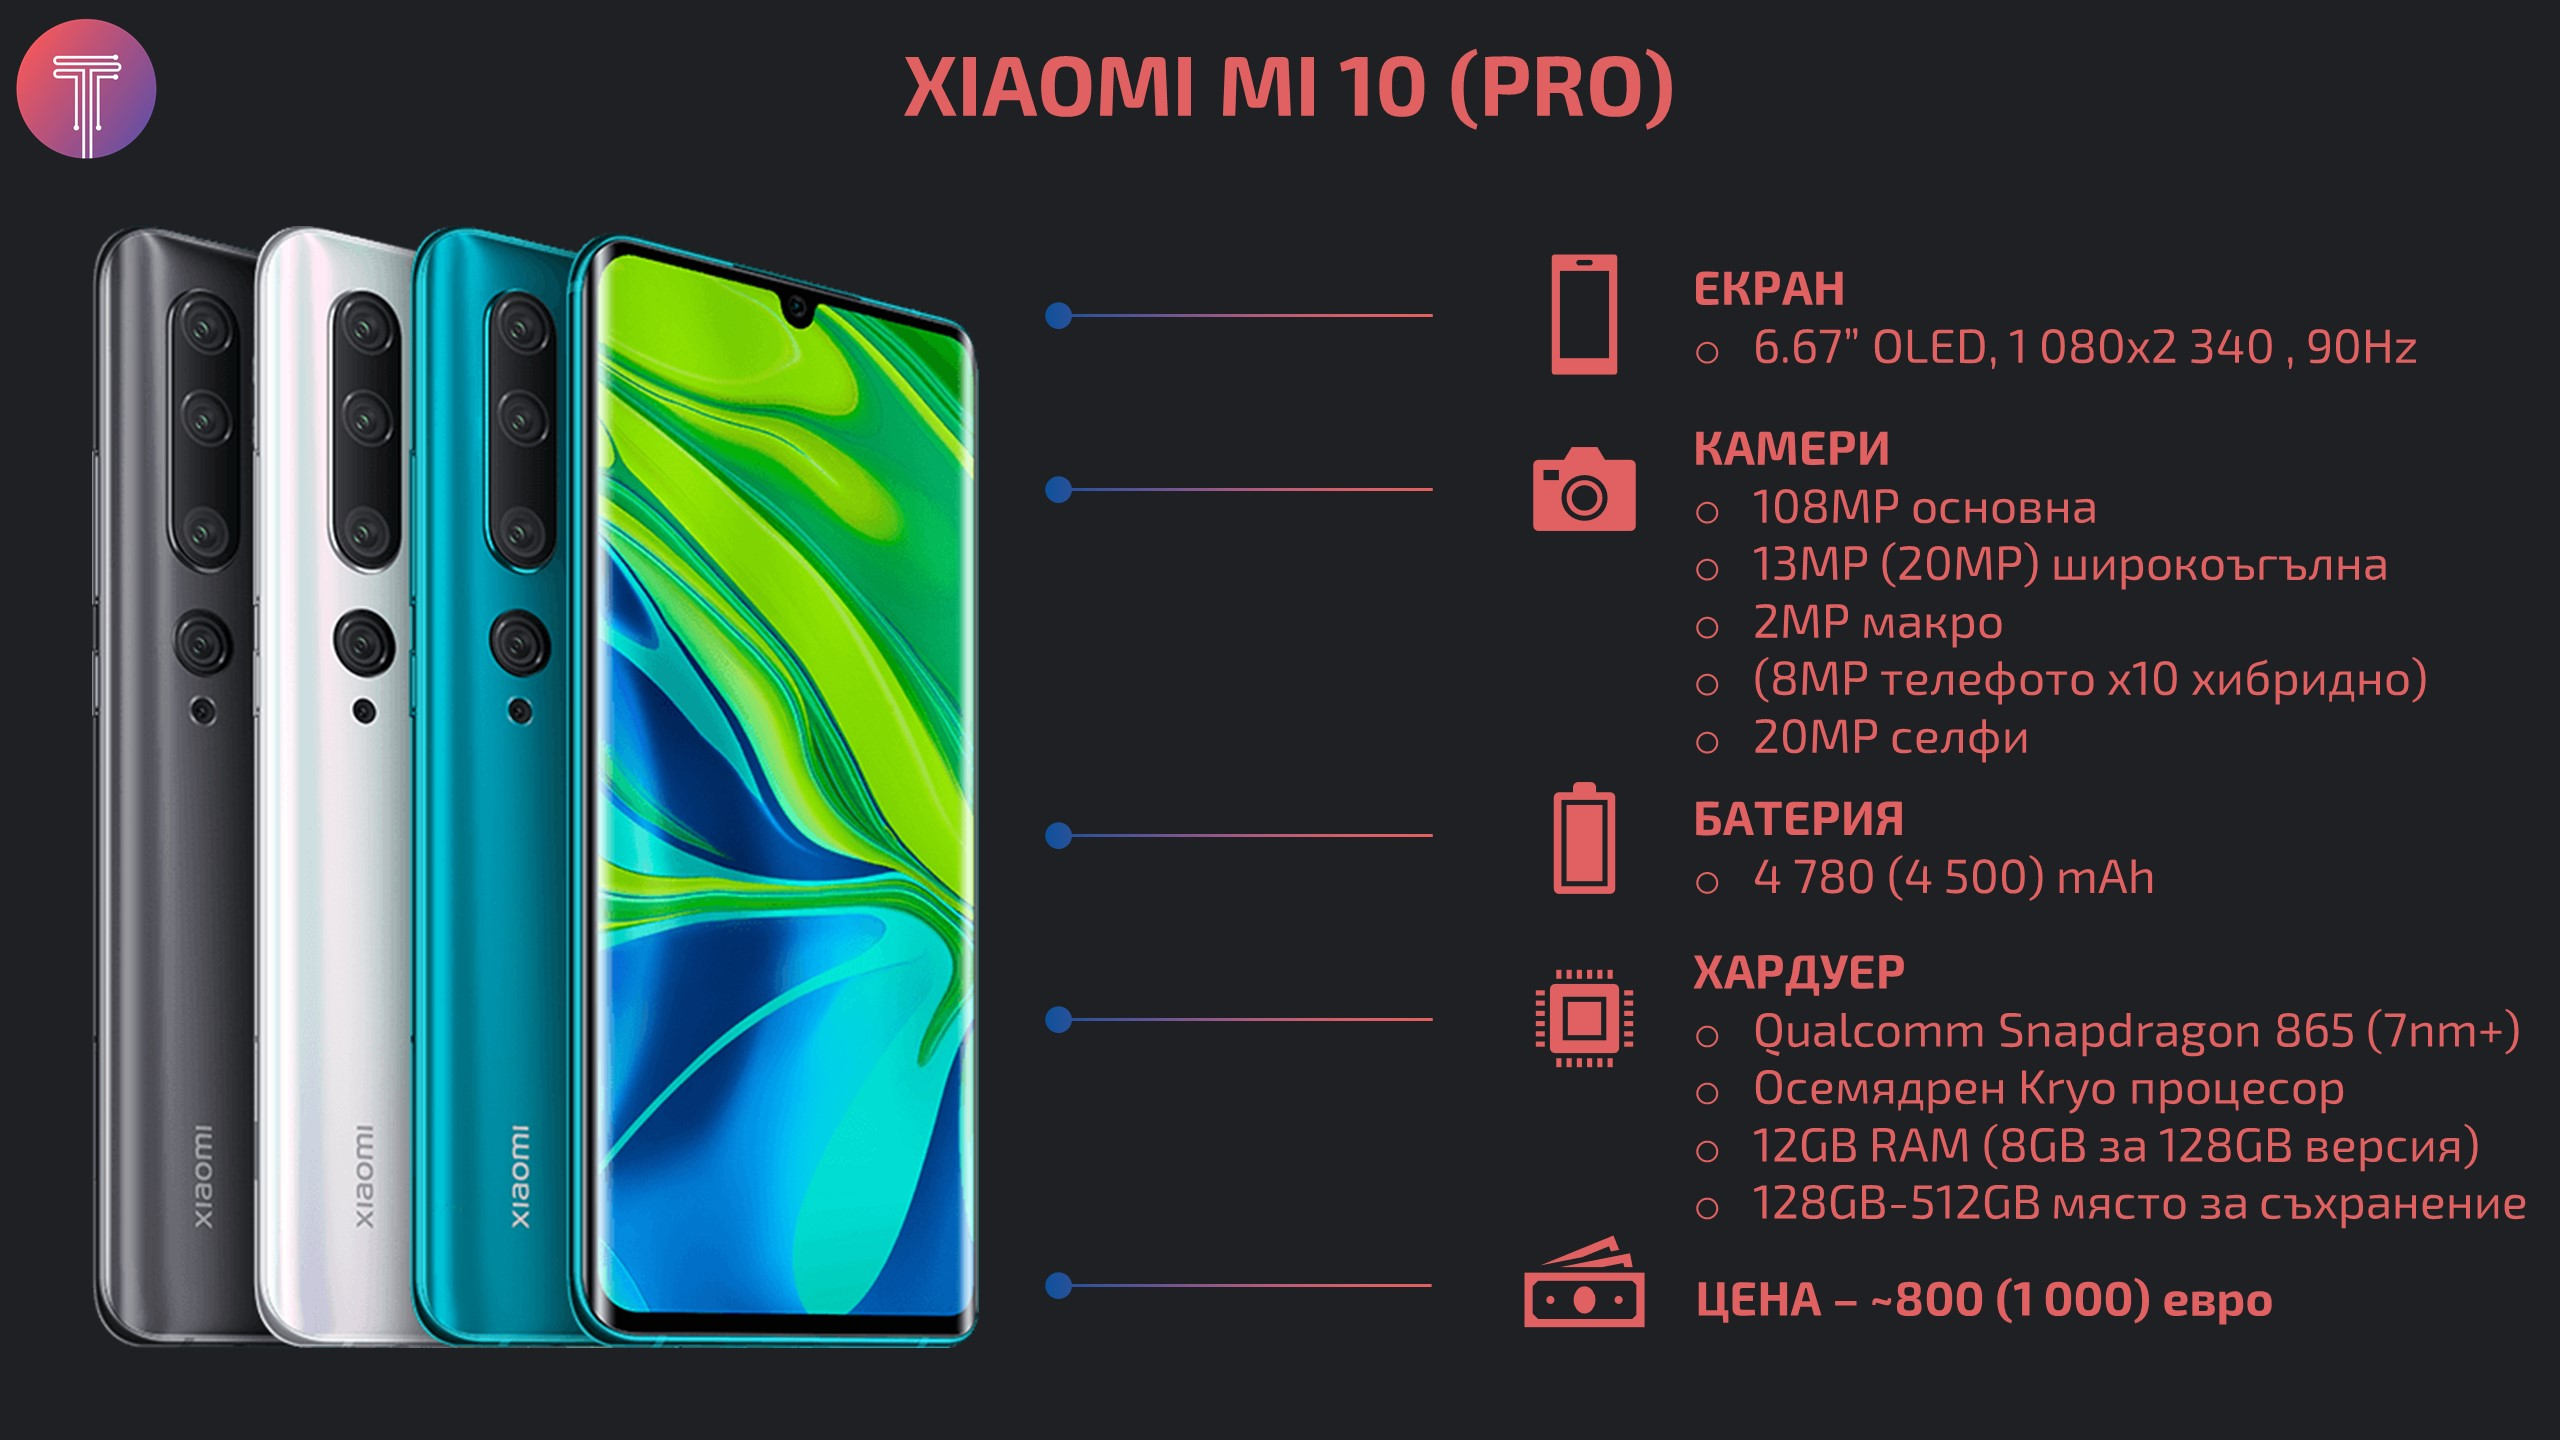 XIAOMI MI 10 and Pro infographic